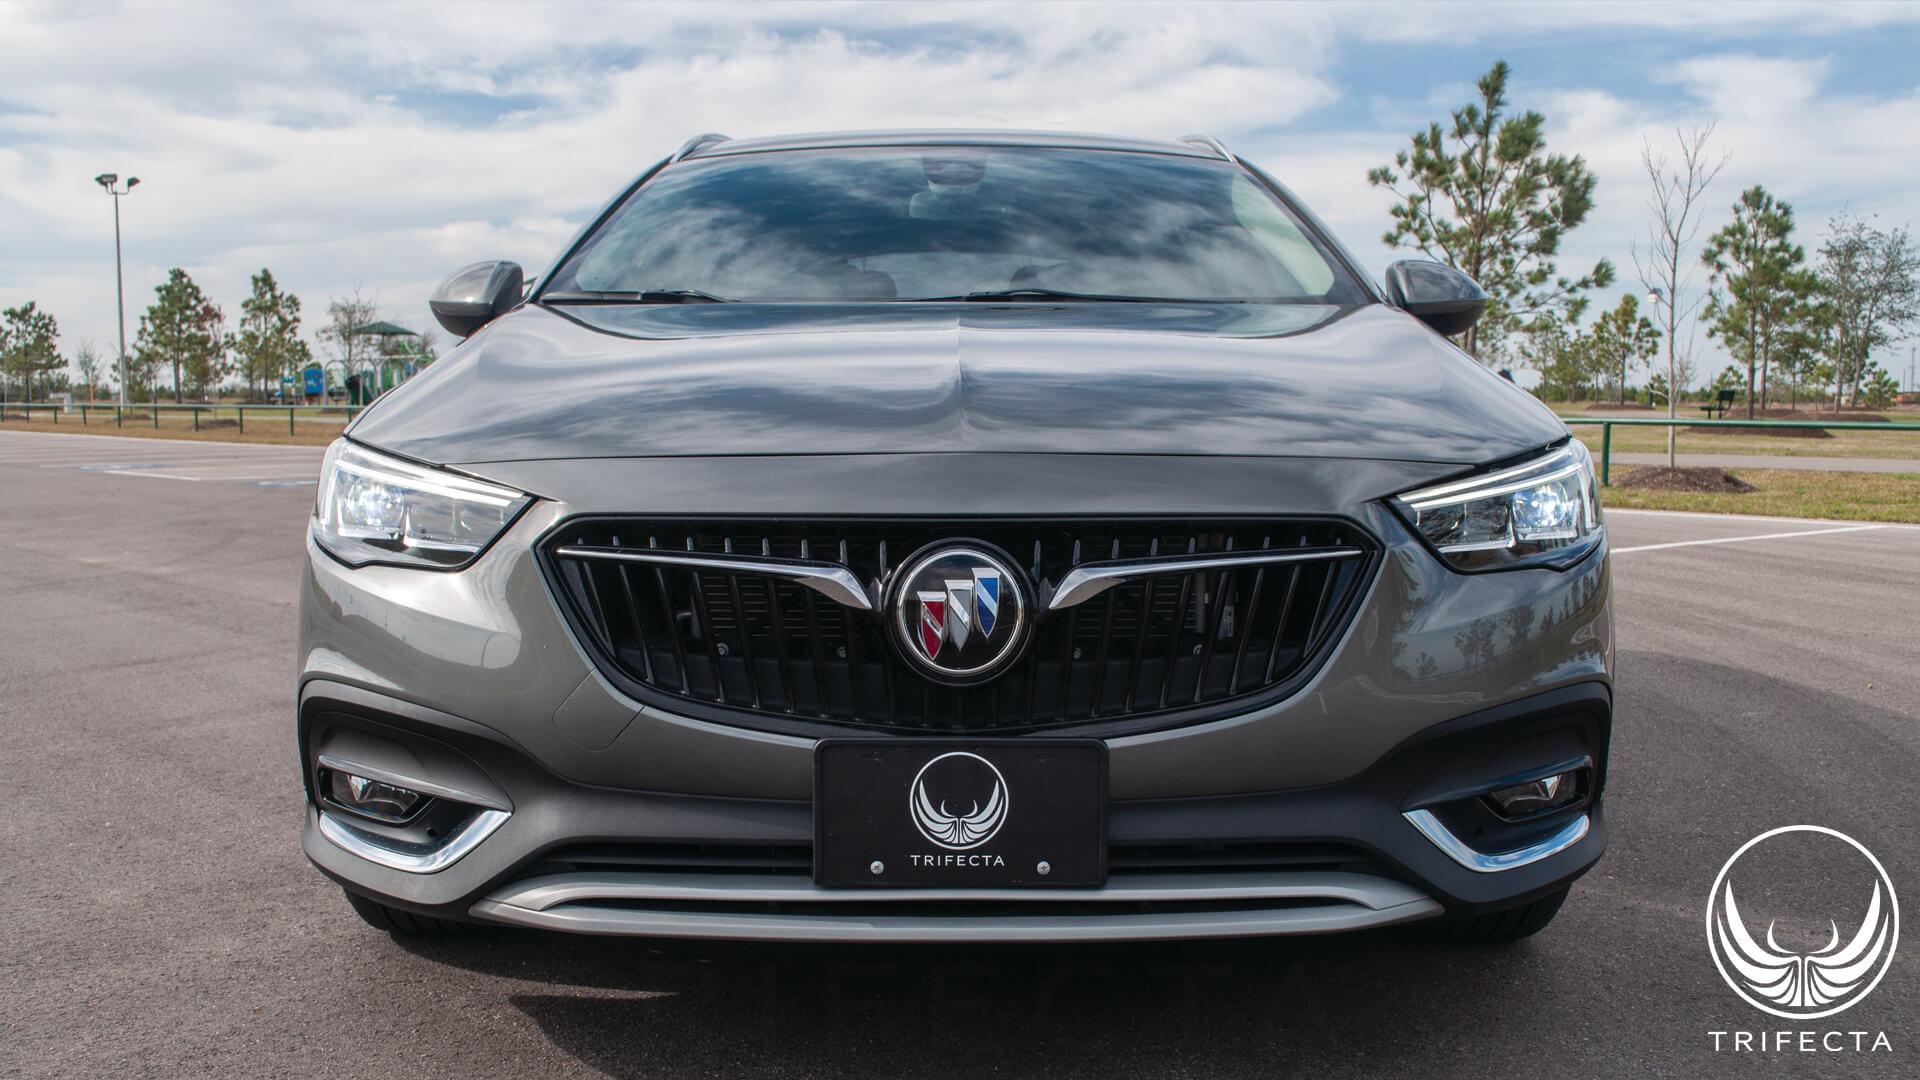 Product Review: 2018--Present Buick Regal - 2.0L Turbo - Advantage